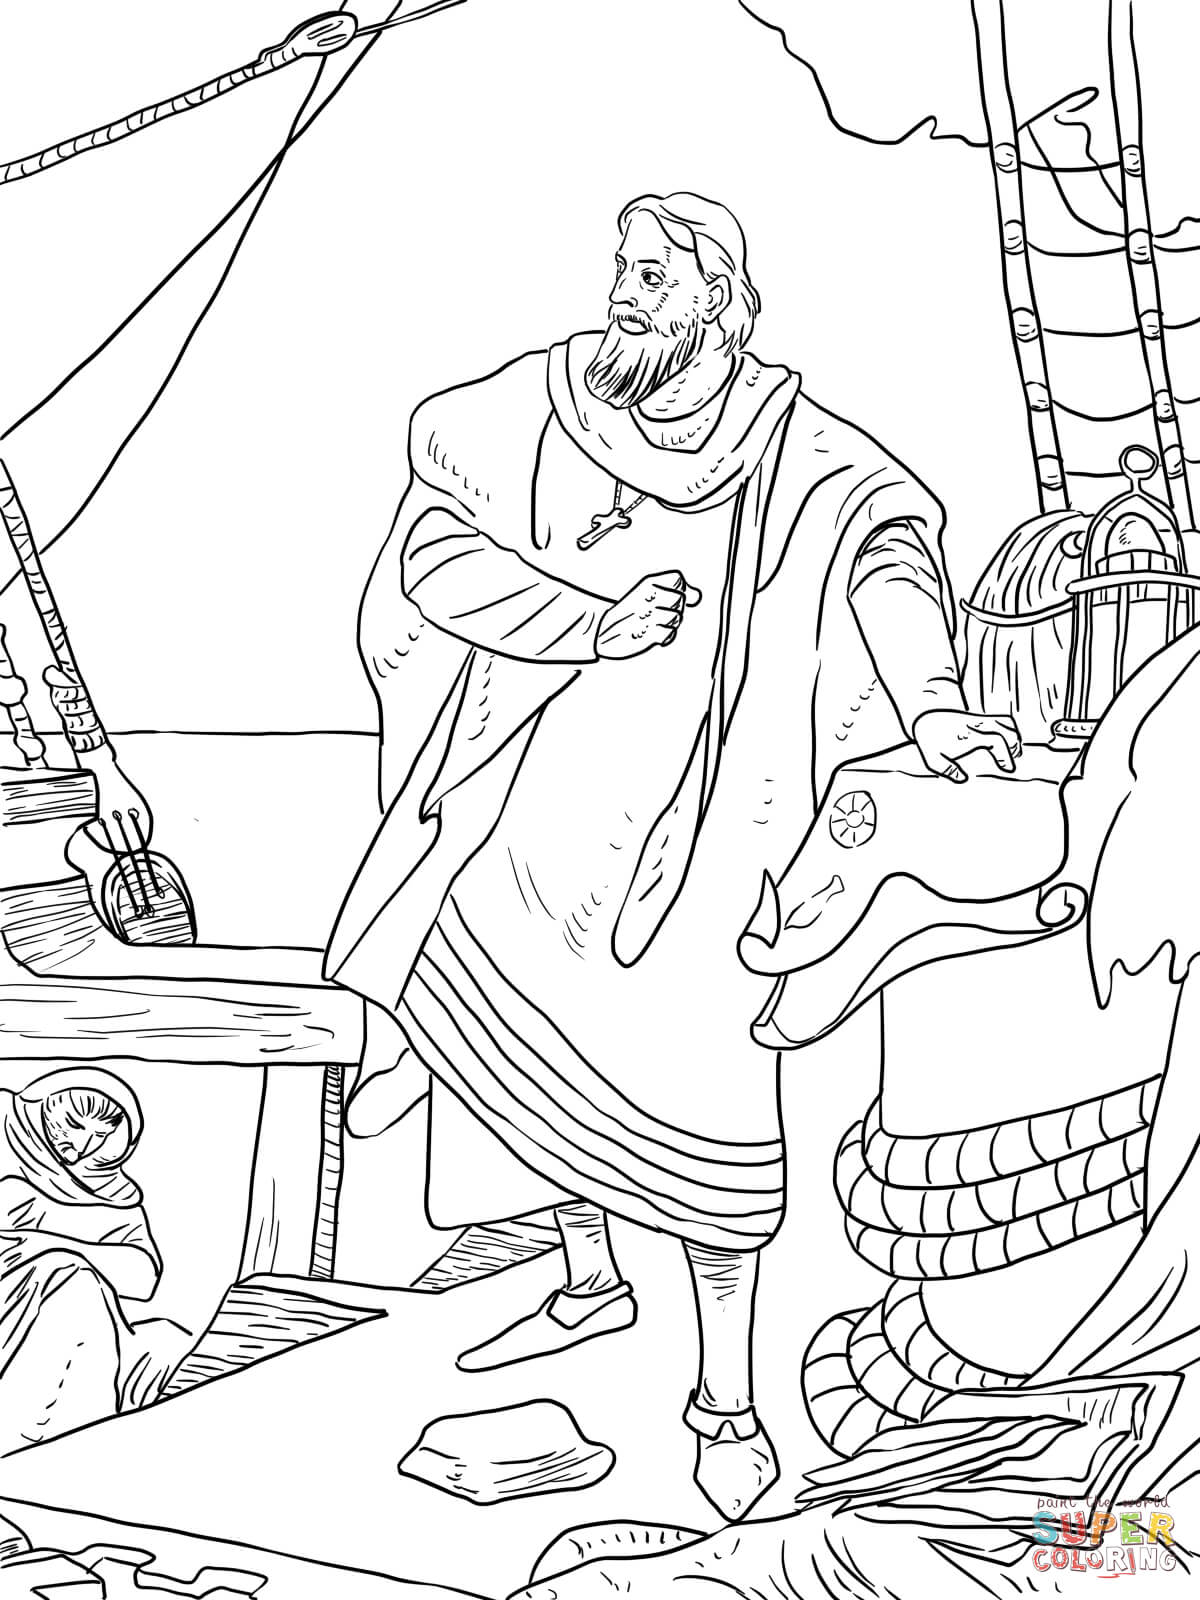 Worksheets Columbus Day Worksheets columbus day drawing at getdrawings com free for personal use 1200x1600 christopher on the santa maria coloring page free